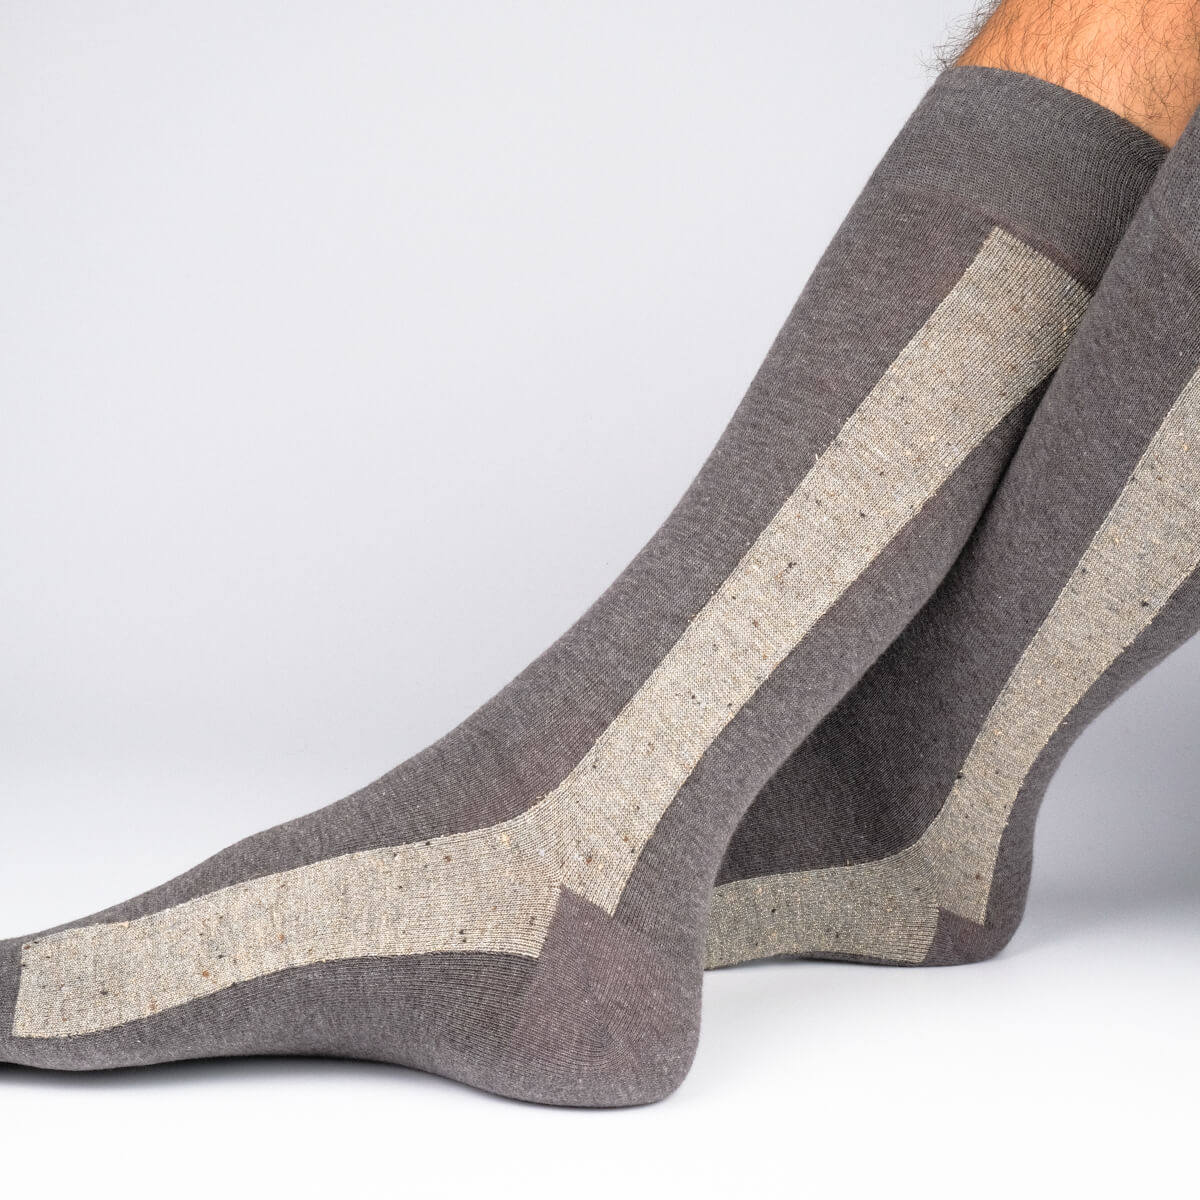 Mens Socks - Beat It Metallic Side Stripe Men's Socks - Dark Grey⎪Etiquette Clothiers